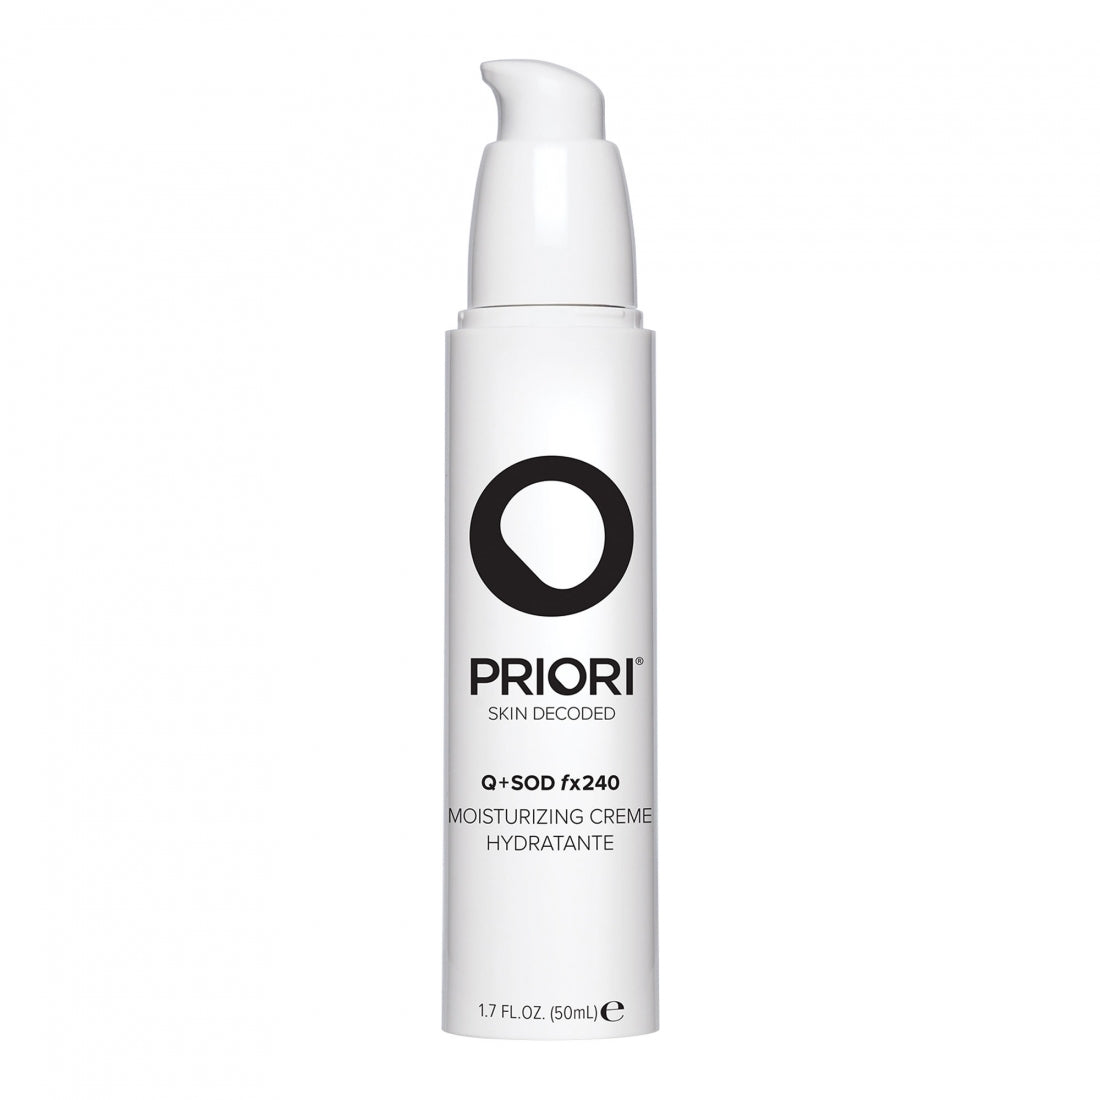 Priori Q+SOD fx240 Moisturizing Creme 50ml